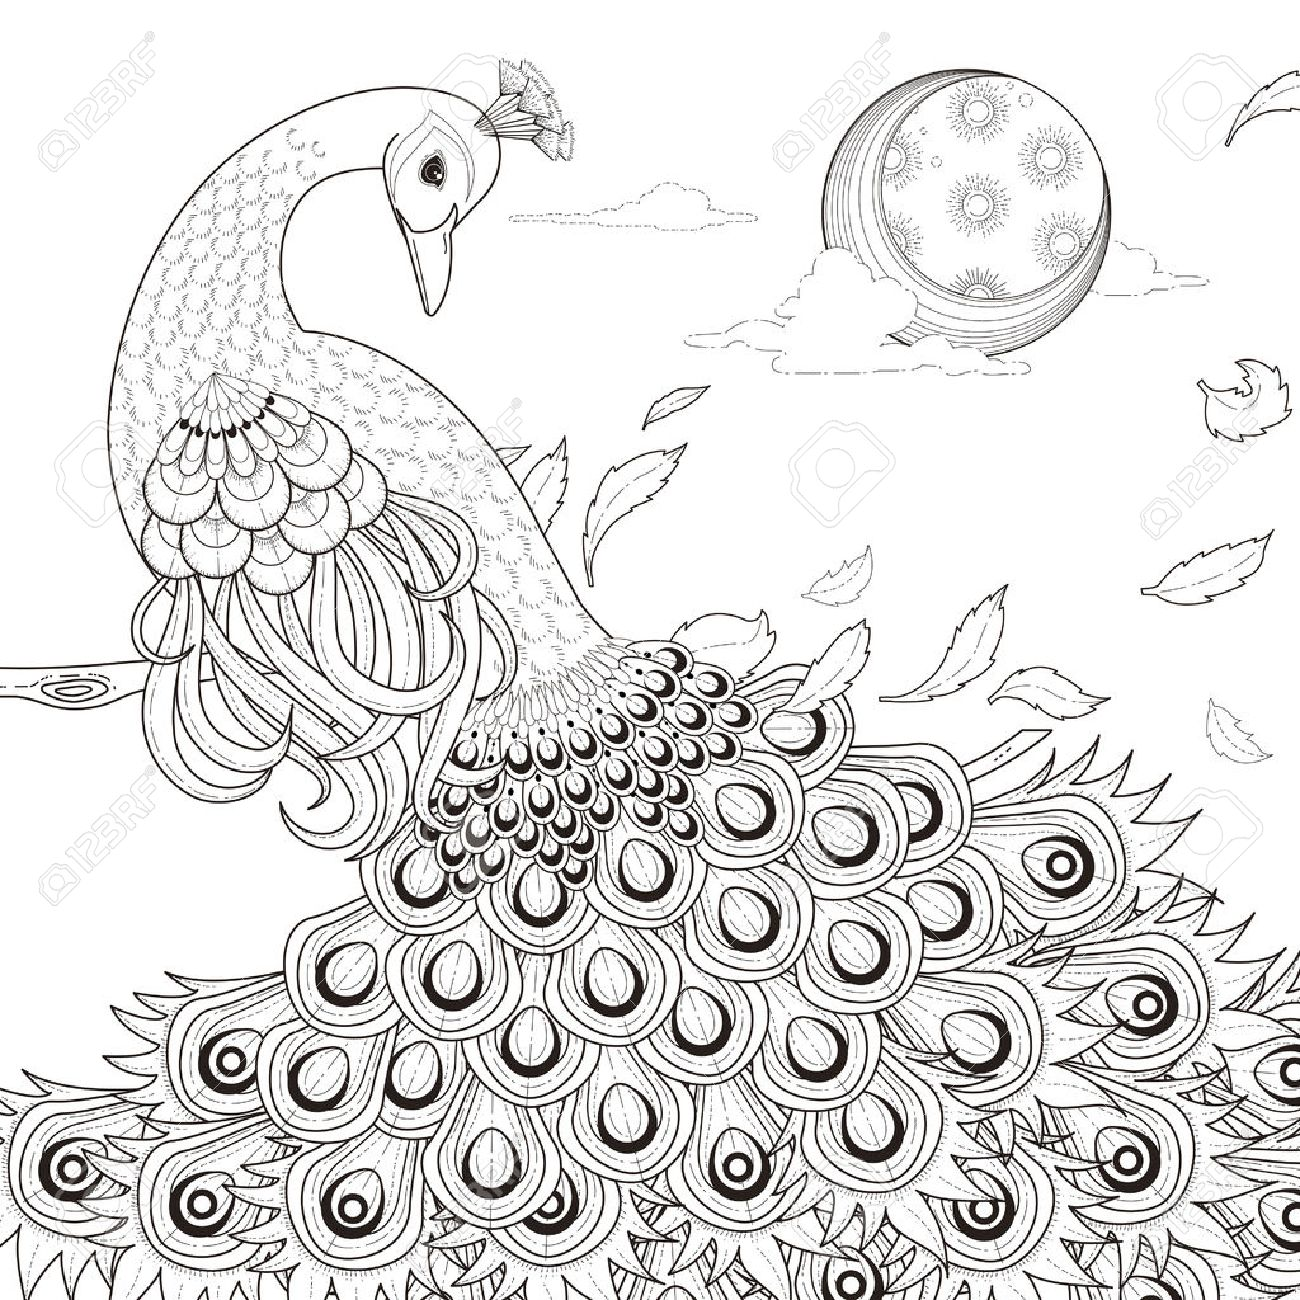 Graceful Peacock Coloring Page In Exquisite Style Stock Vector